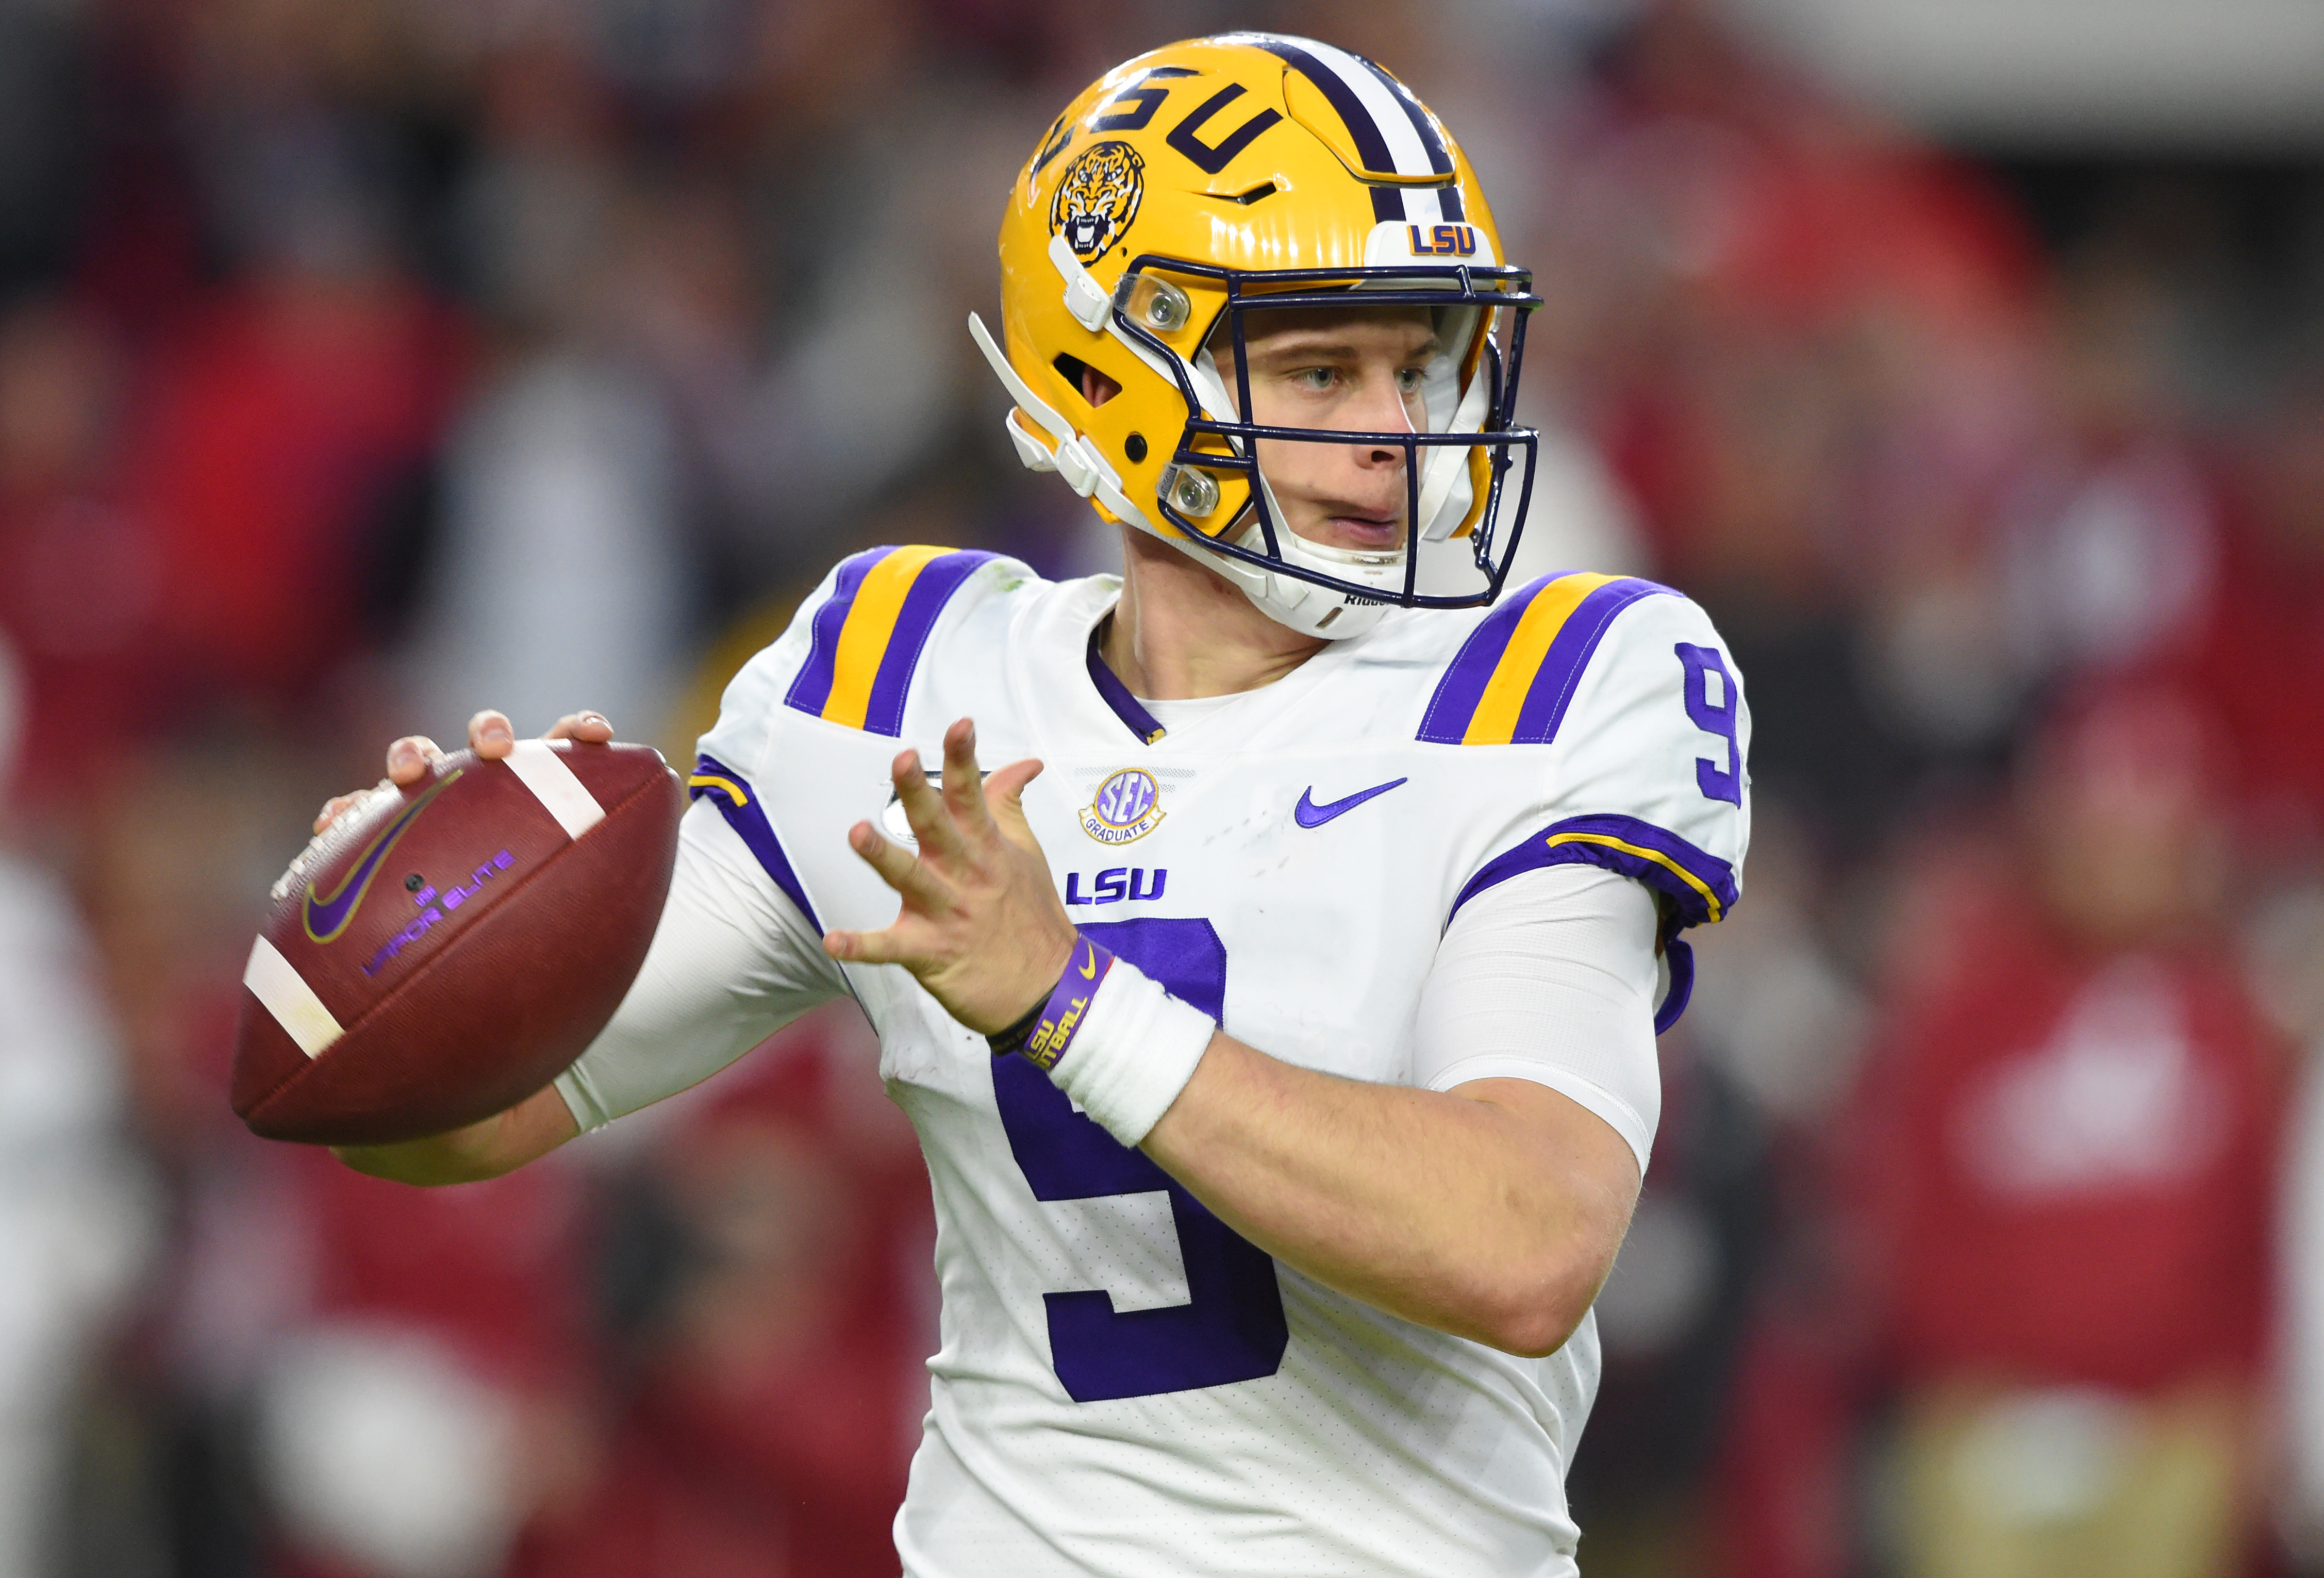 Five remarkable statistics from the College Football Playoff semifinals